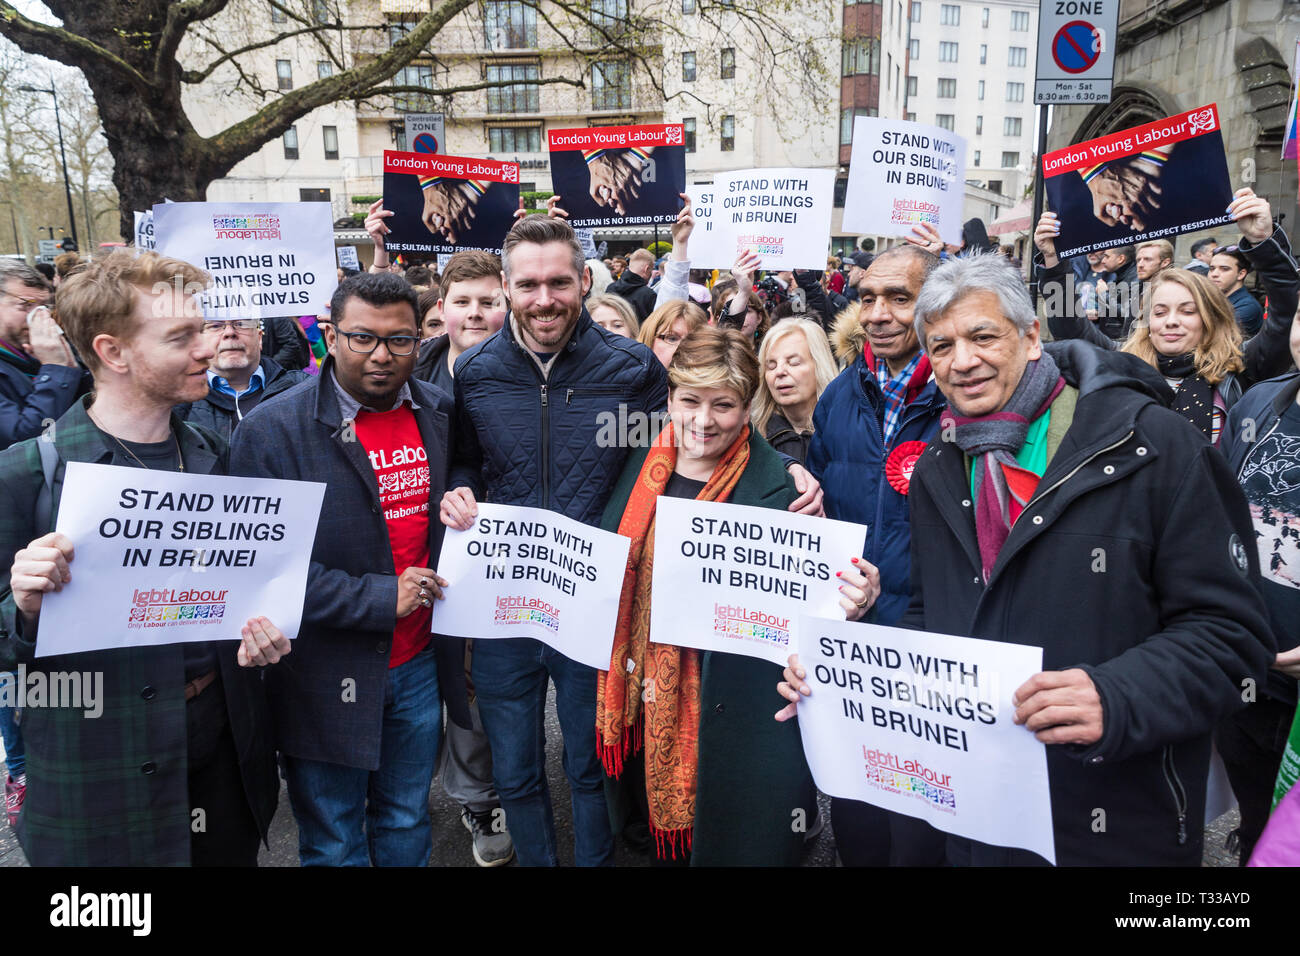 Emily Thornberry, Shadow Foreign Secretary, speaking at the protest outside The Dorchester hotel in London against the new Brunei anti-gay laws - Stock Image